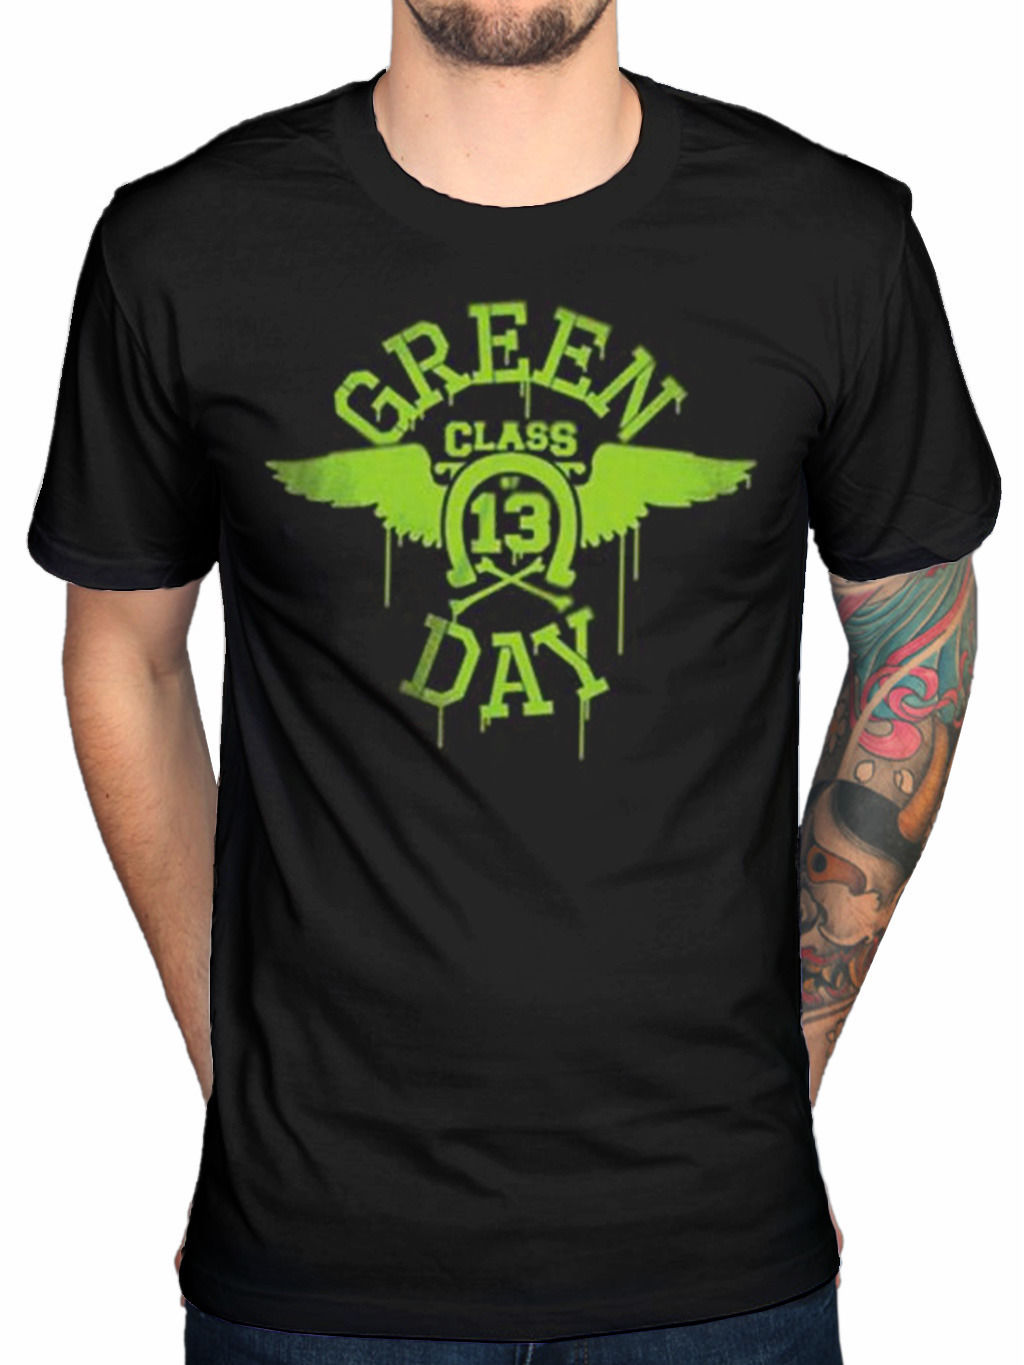 Black t shirt with neon letters - Printing O Neck Green Day Neon Green Class 13 T Shirt Bullet In A Bible